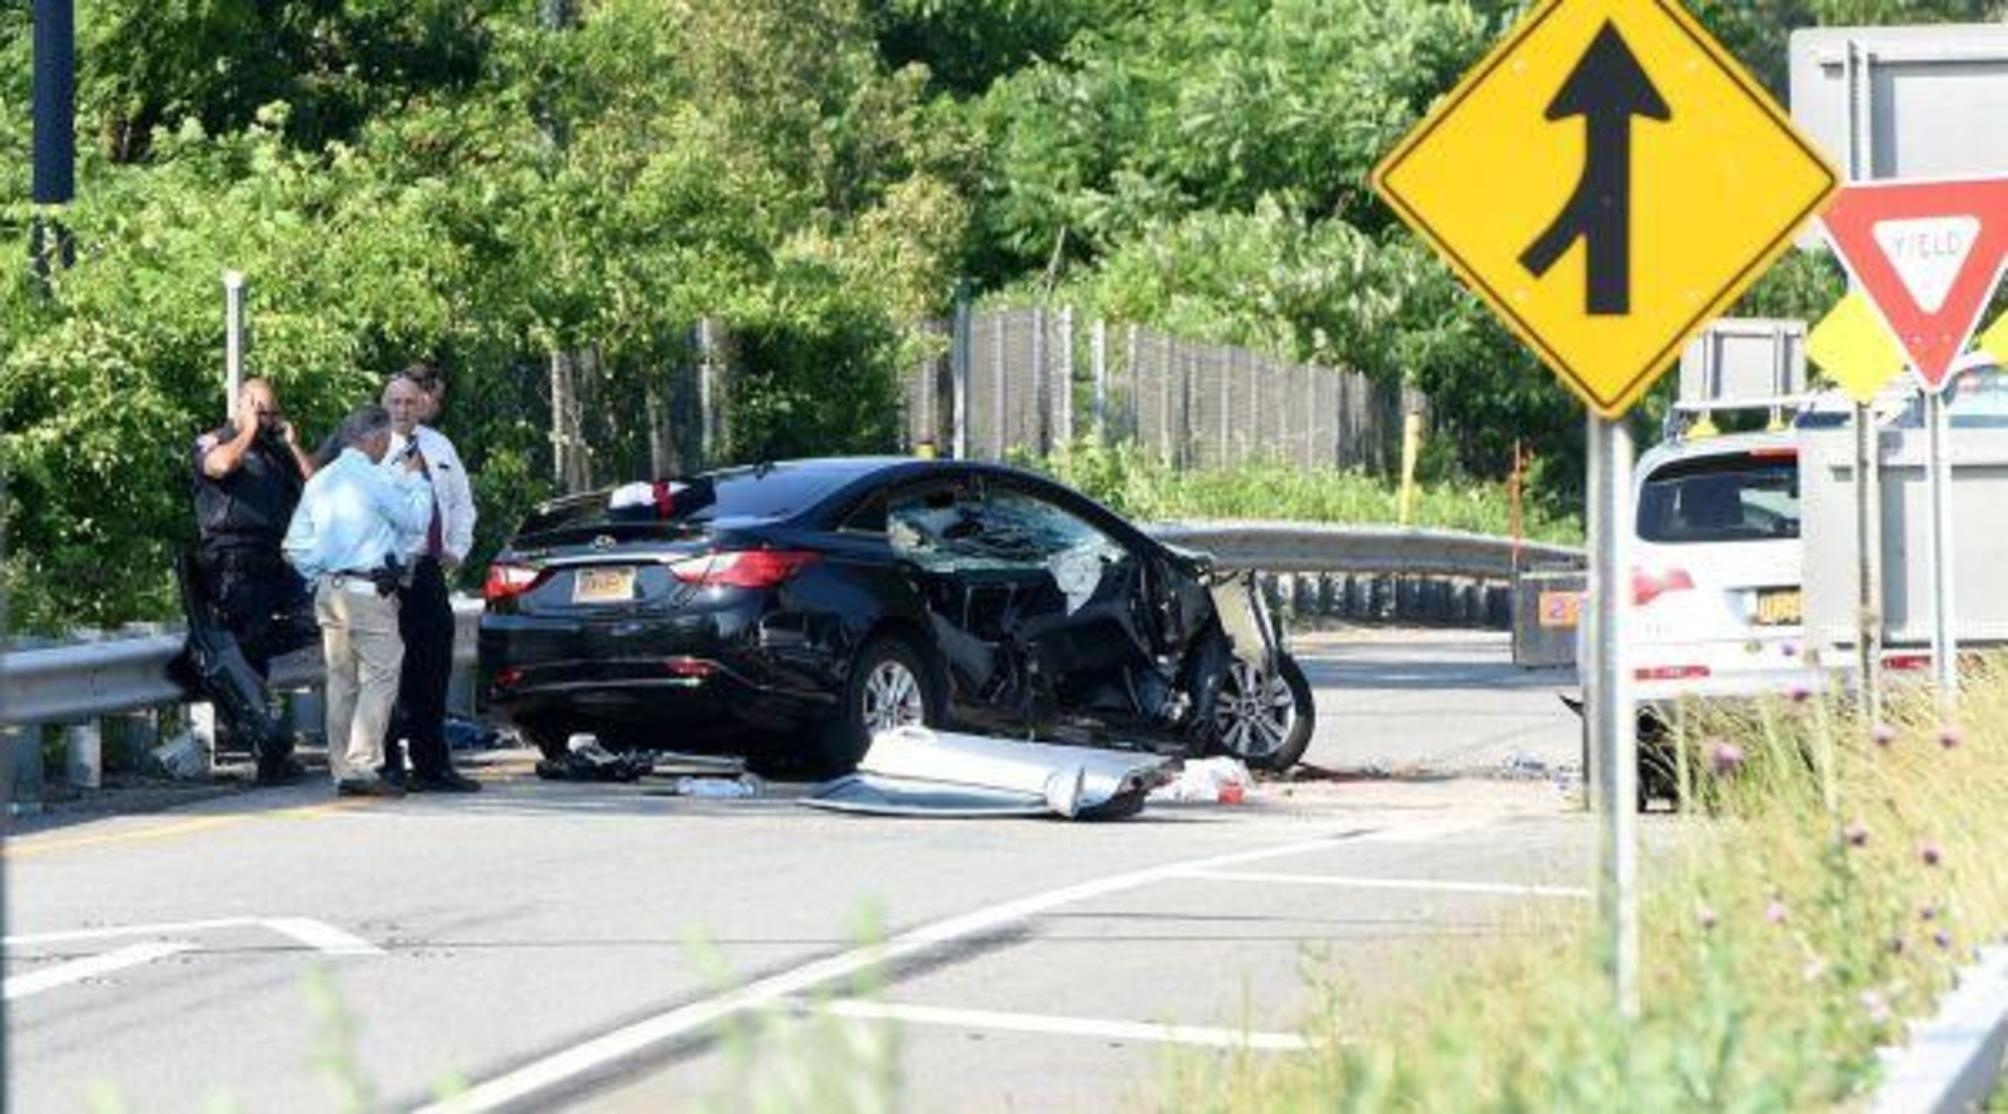 wrong way driver in lie crash that killed pregnant woman arrested